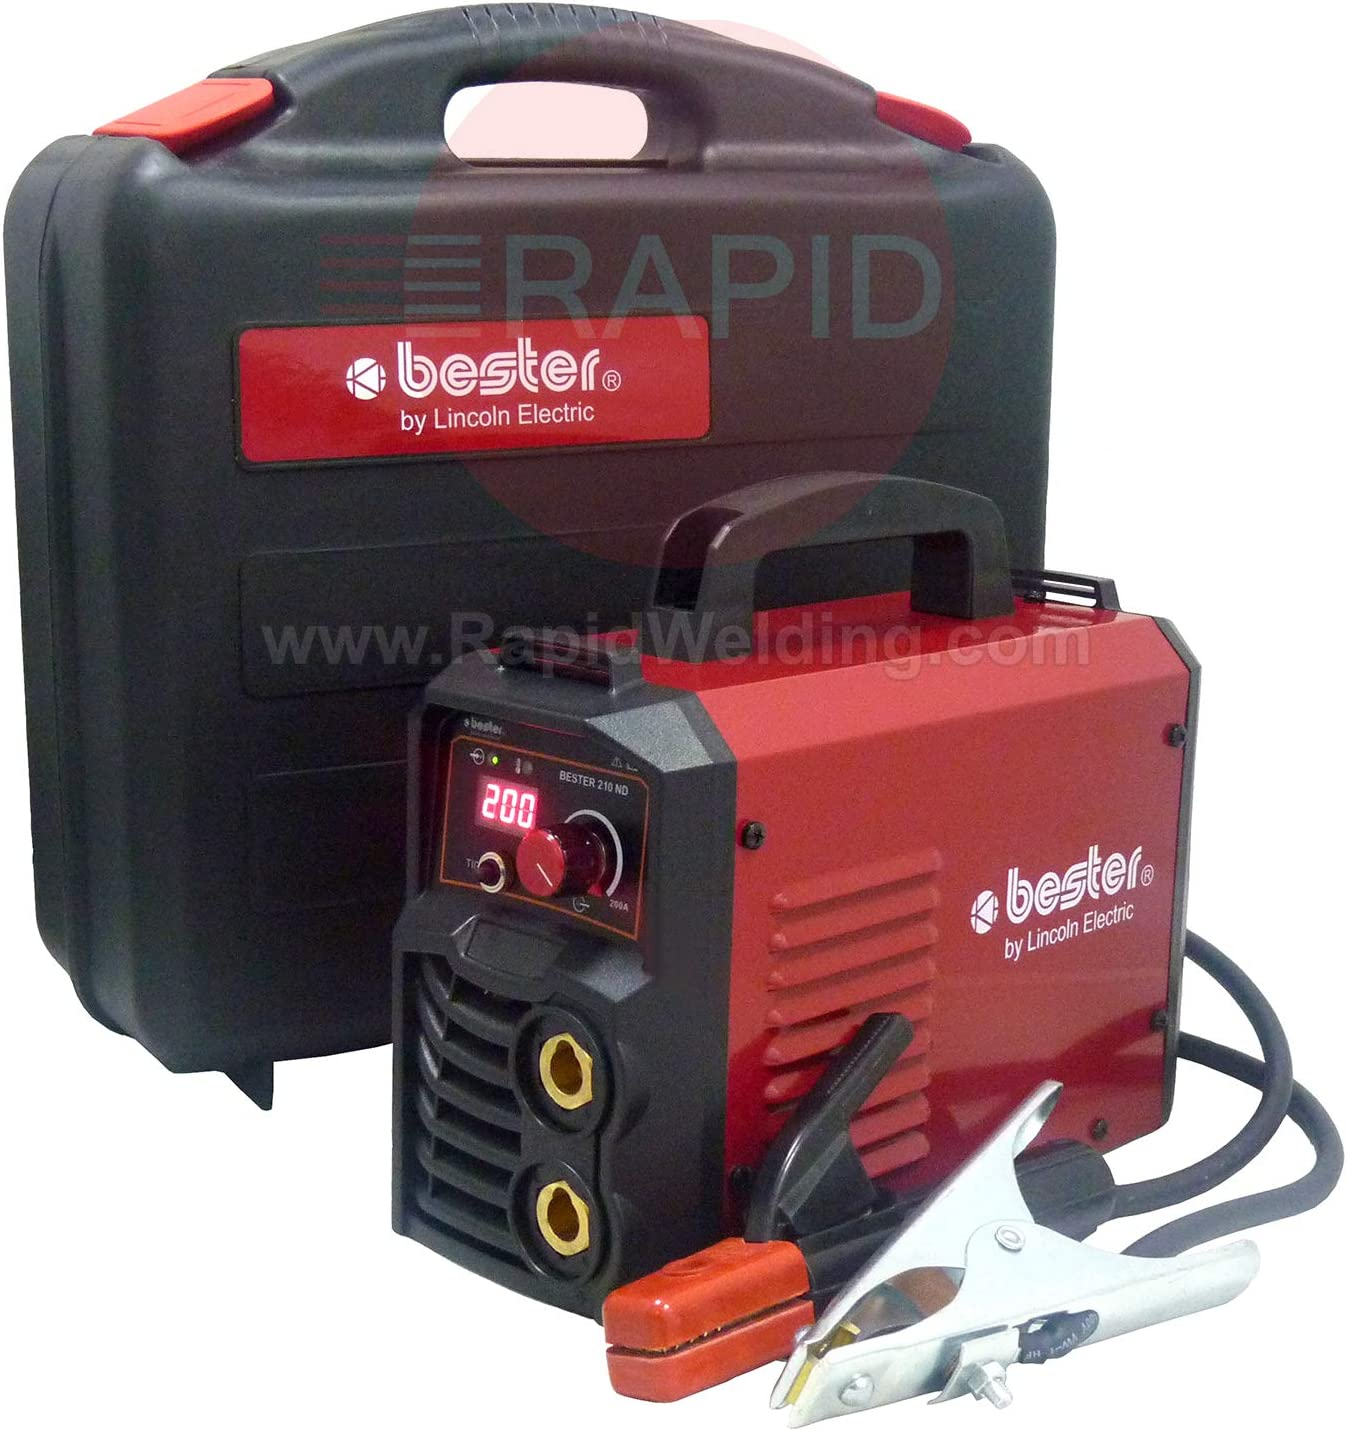 Lincoln Bester 210-ND MMA Inverter Arc Welder Suitcase Package 1ph ...